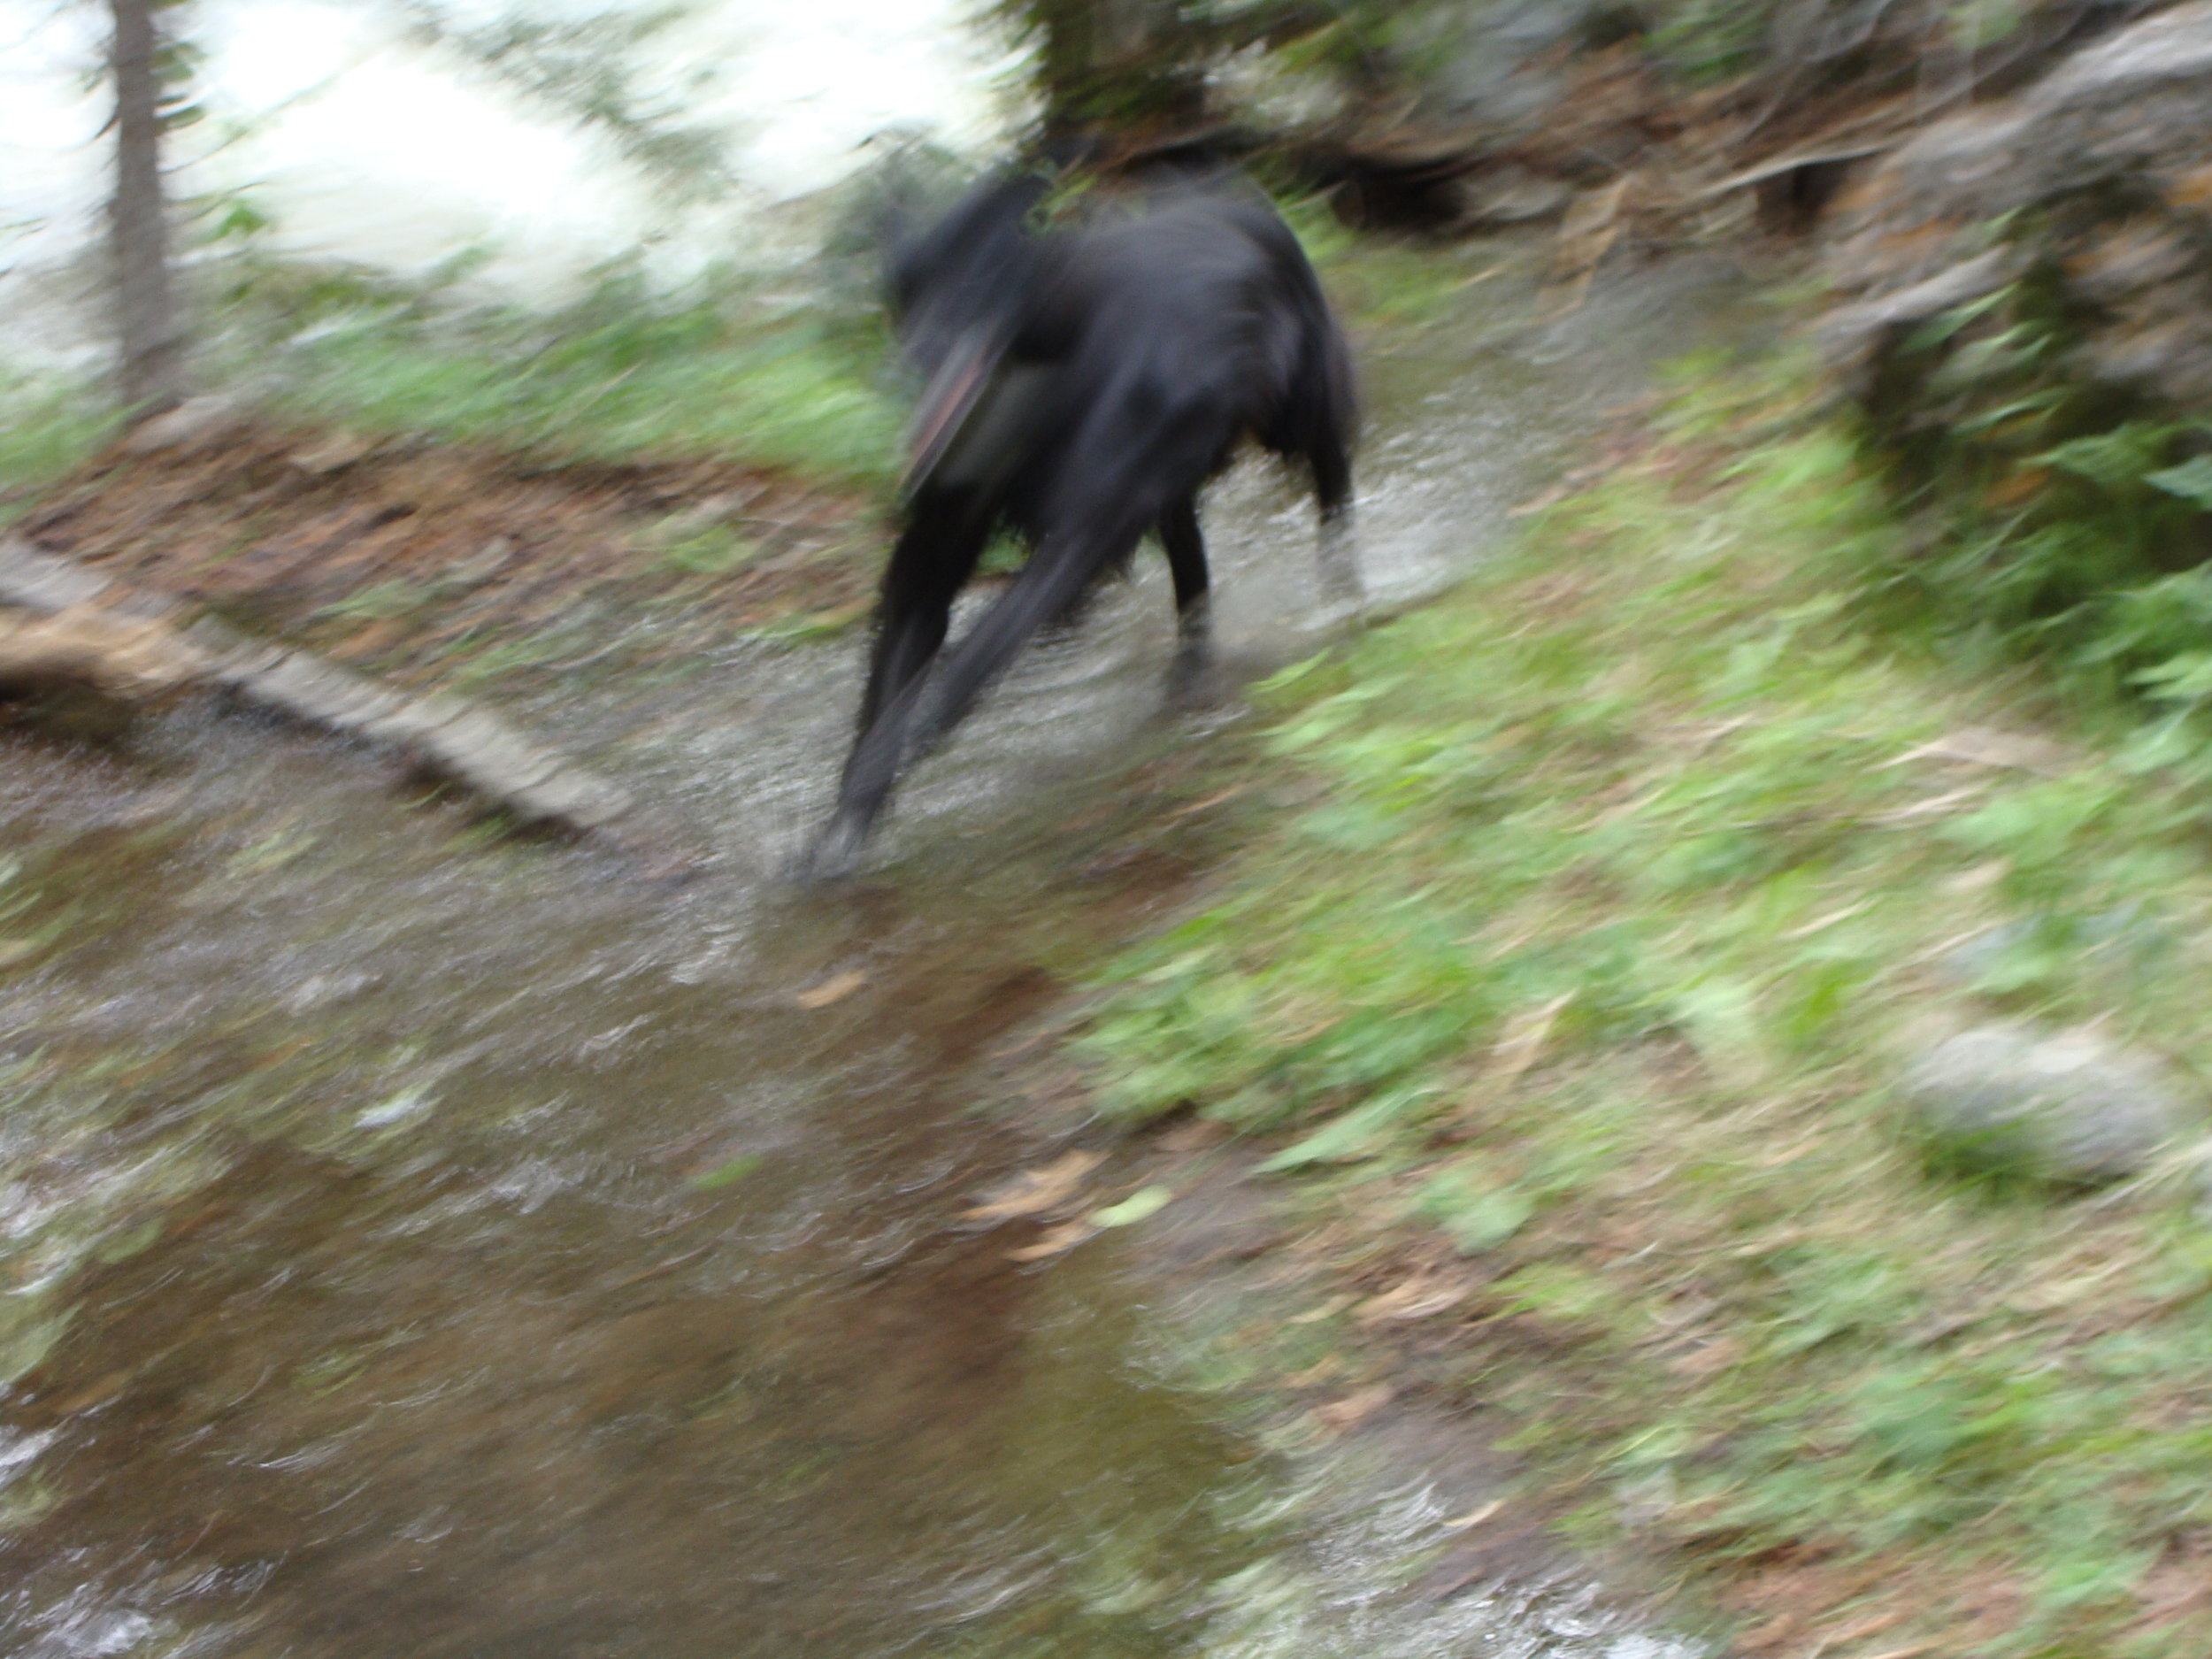 Romping Through Water on the Trail